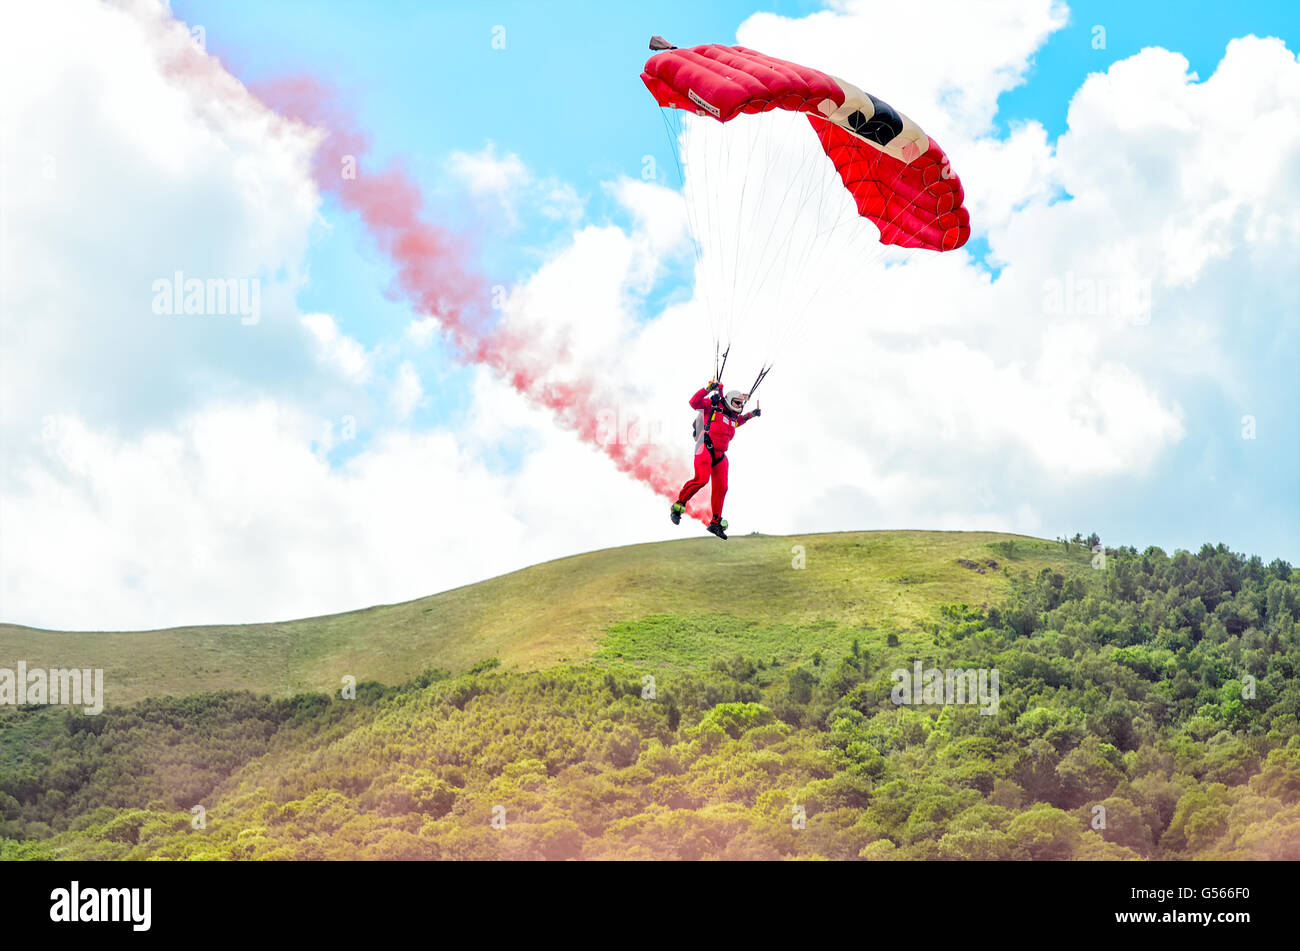 The British Army's Parachute Regiment display team the Red Devils performing at the Three Counties Show - Stock Image